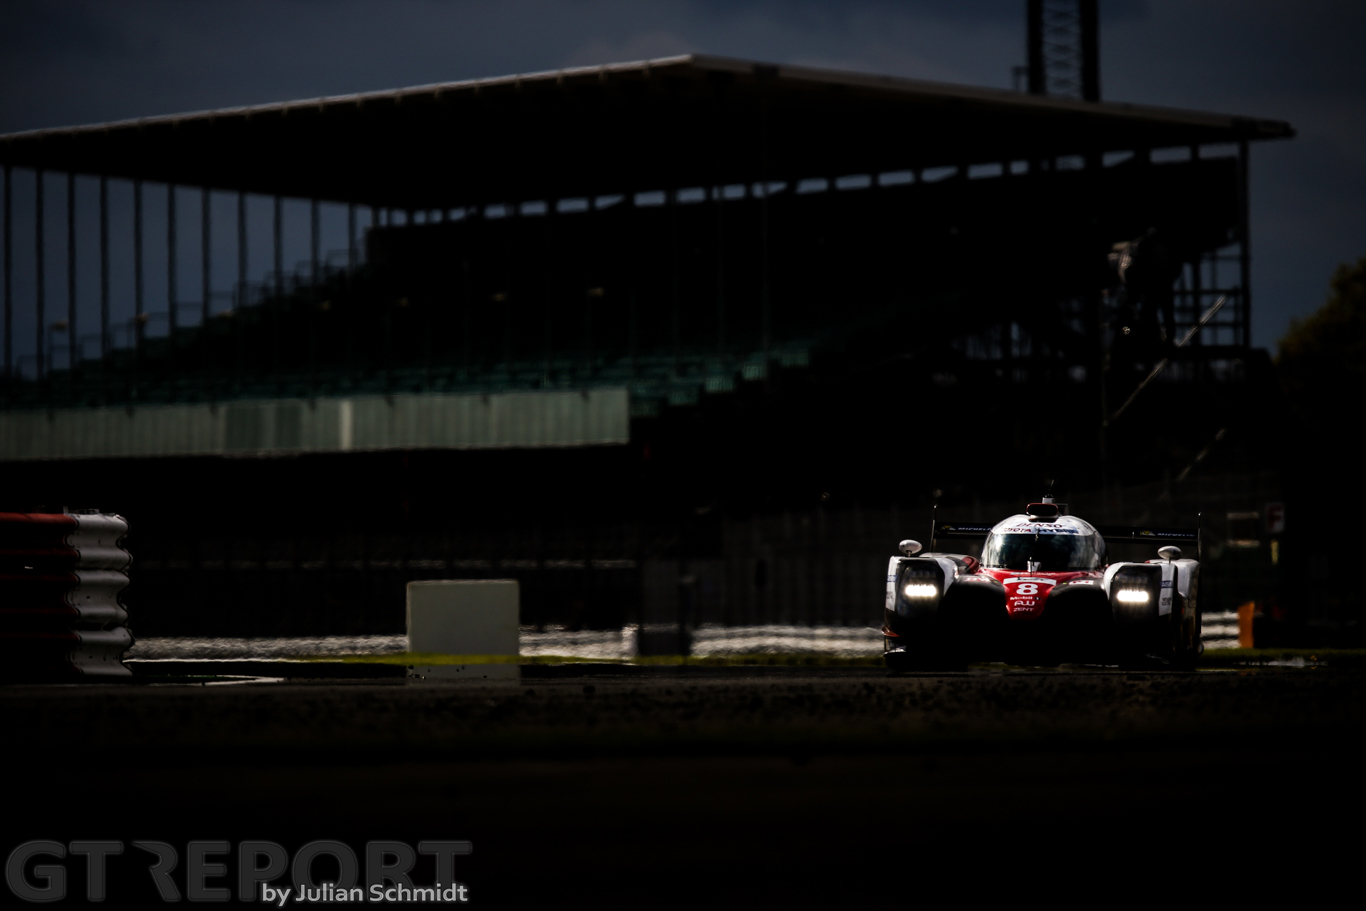 FIA WEC Silverstone race report: Starting again